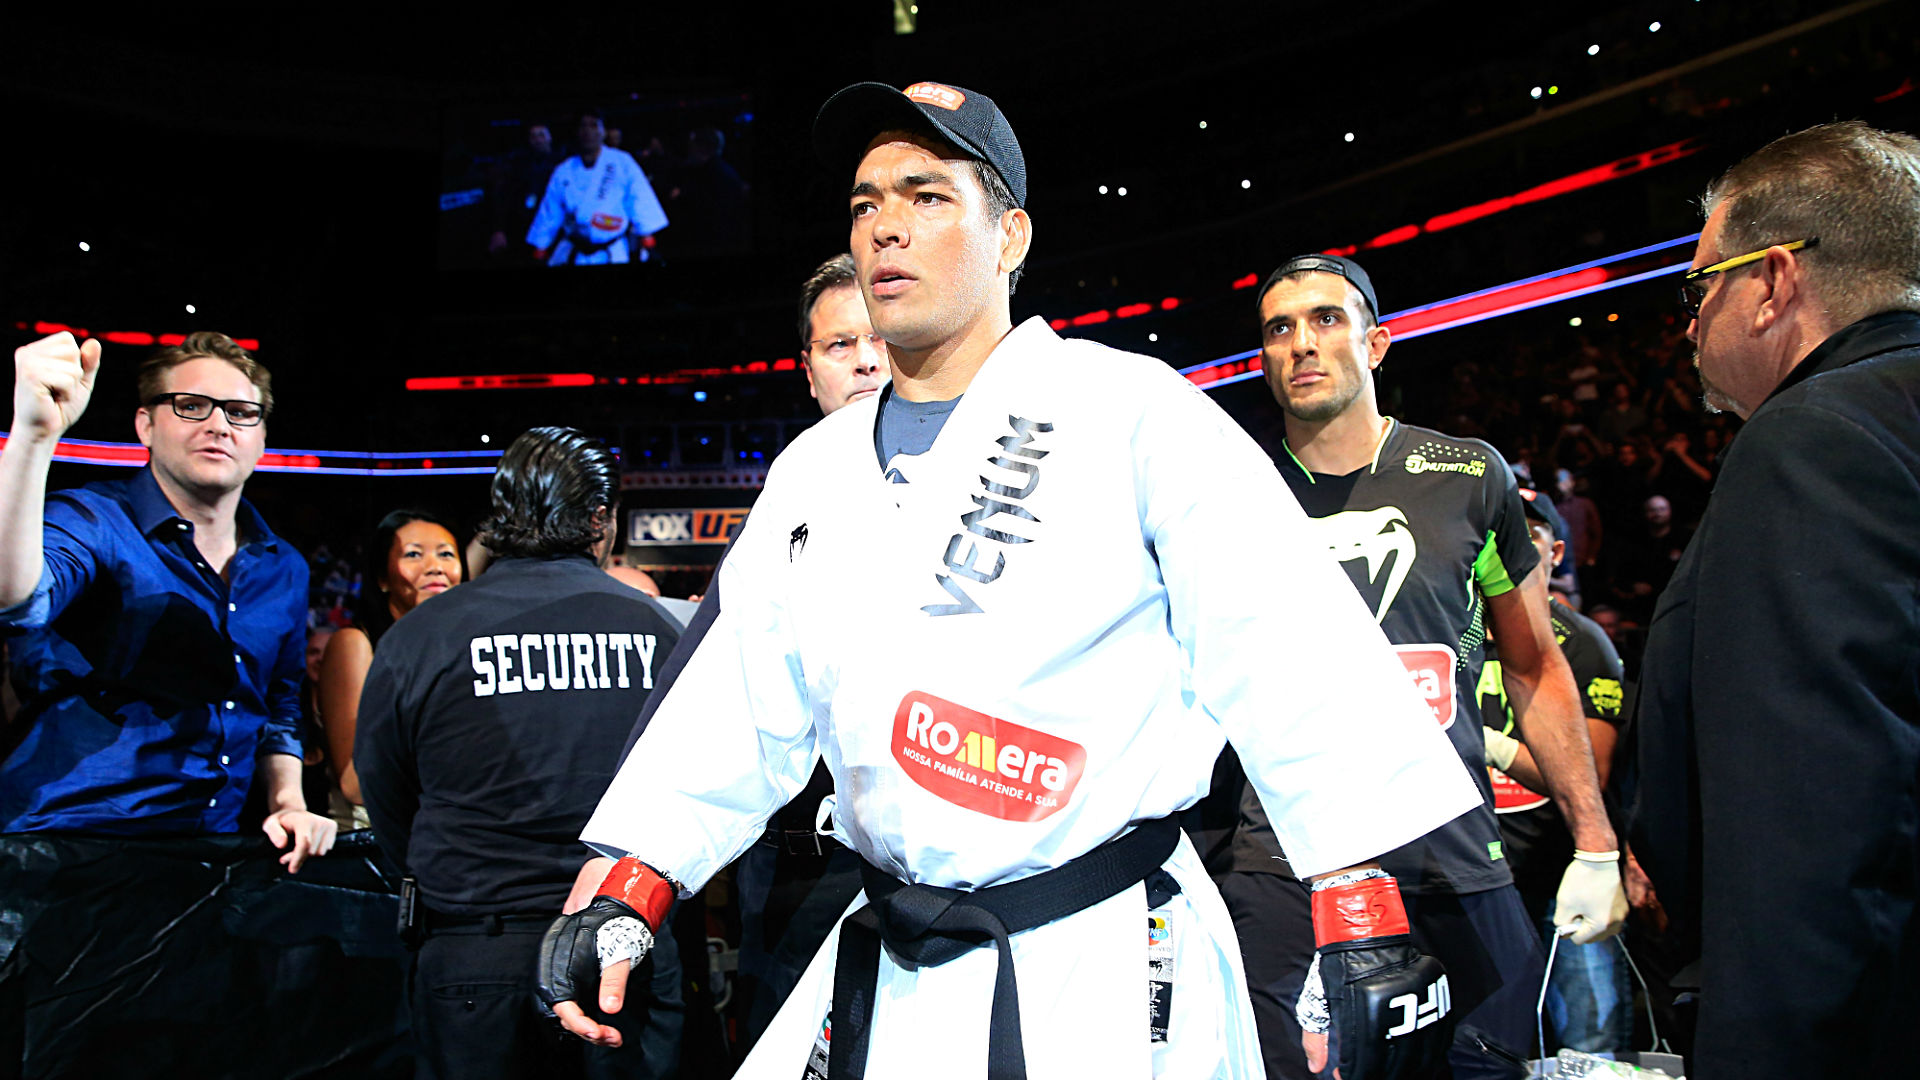 Lyoto Machida's culinary passion fuels fighting fire ahead of MMA clash with Chael Sonnen